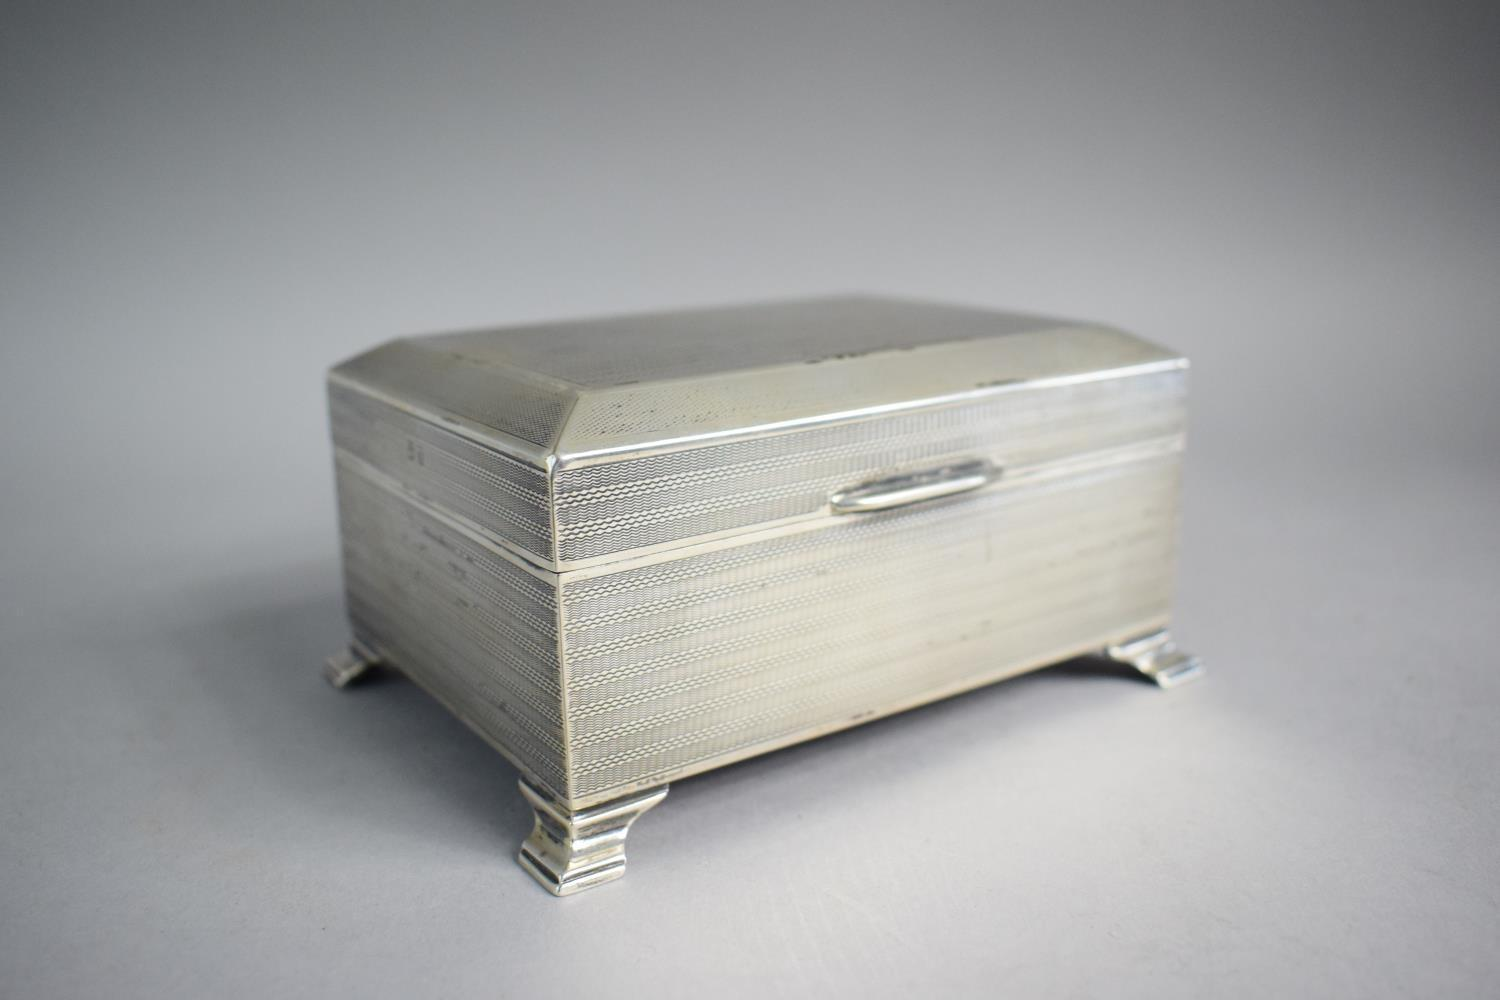 Lot 218 - A Silver Cigarette Box with Engine Turned Decoration. 13cm Wide, Birmingham 1928